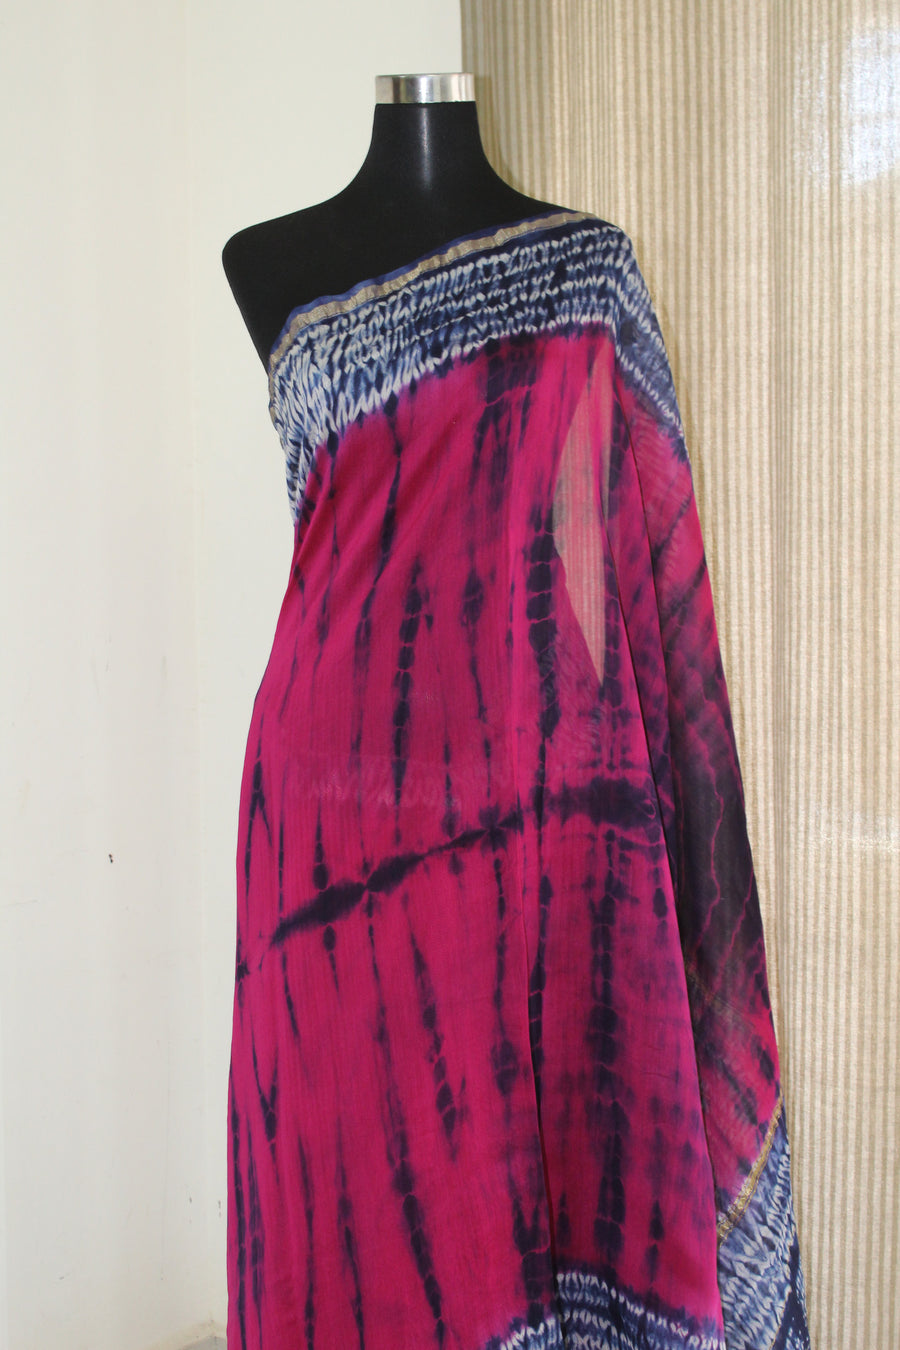 SHIBORI DYED HANDICRAFTED CHANDERI SAREE WITH BLOUSE